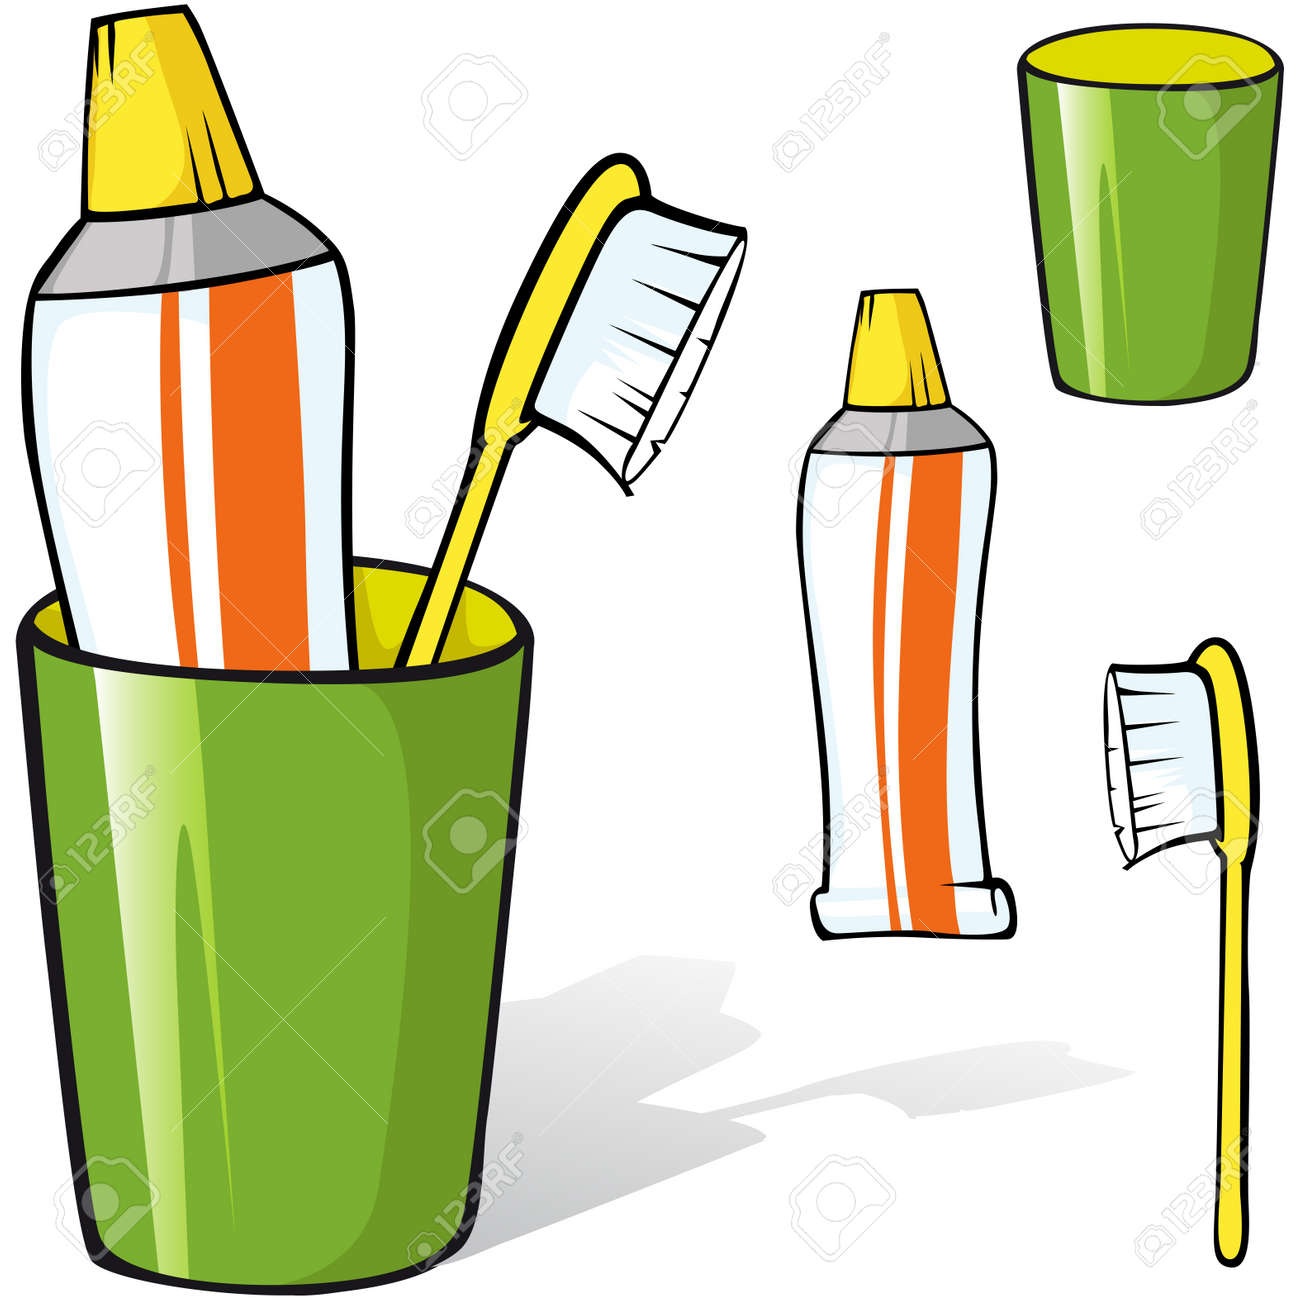 12,425 Toothbrush Stock Illustrations, Cliparts And Royalty Free ...